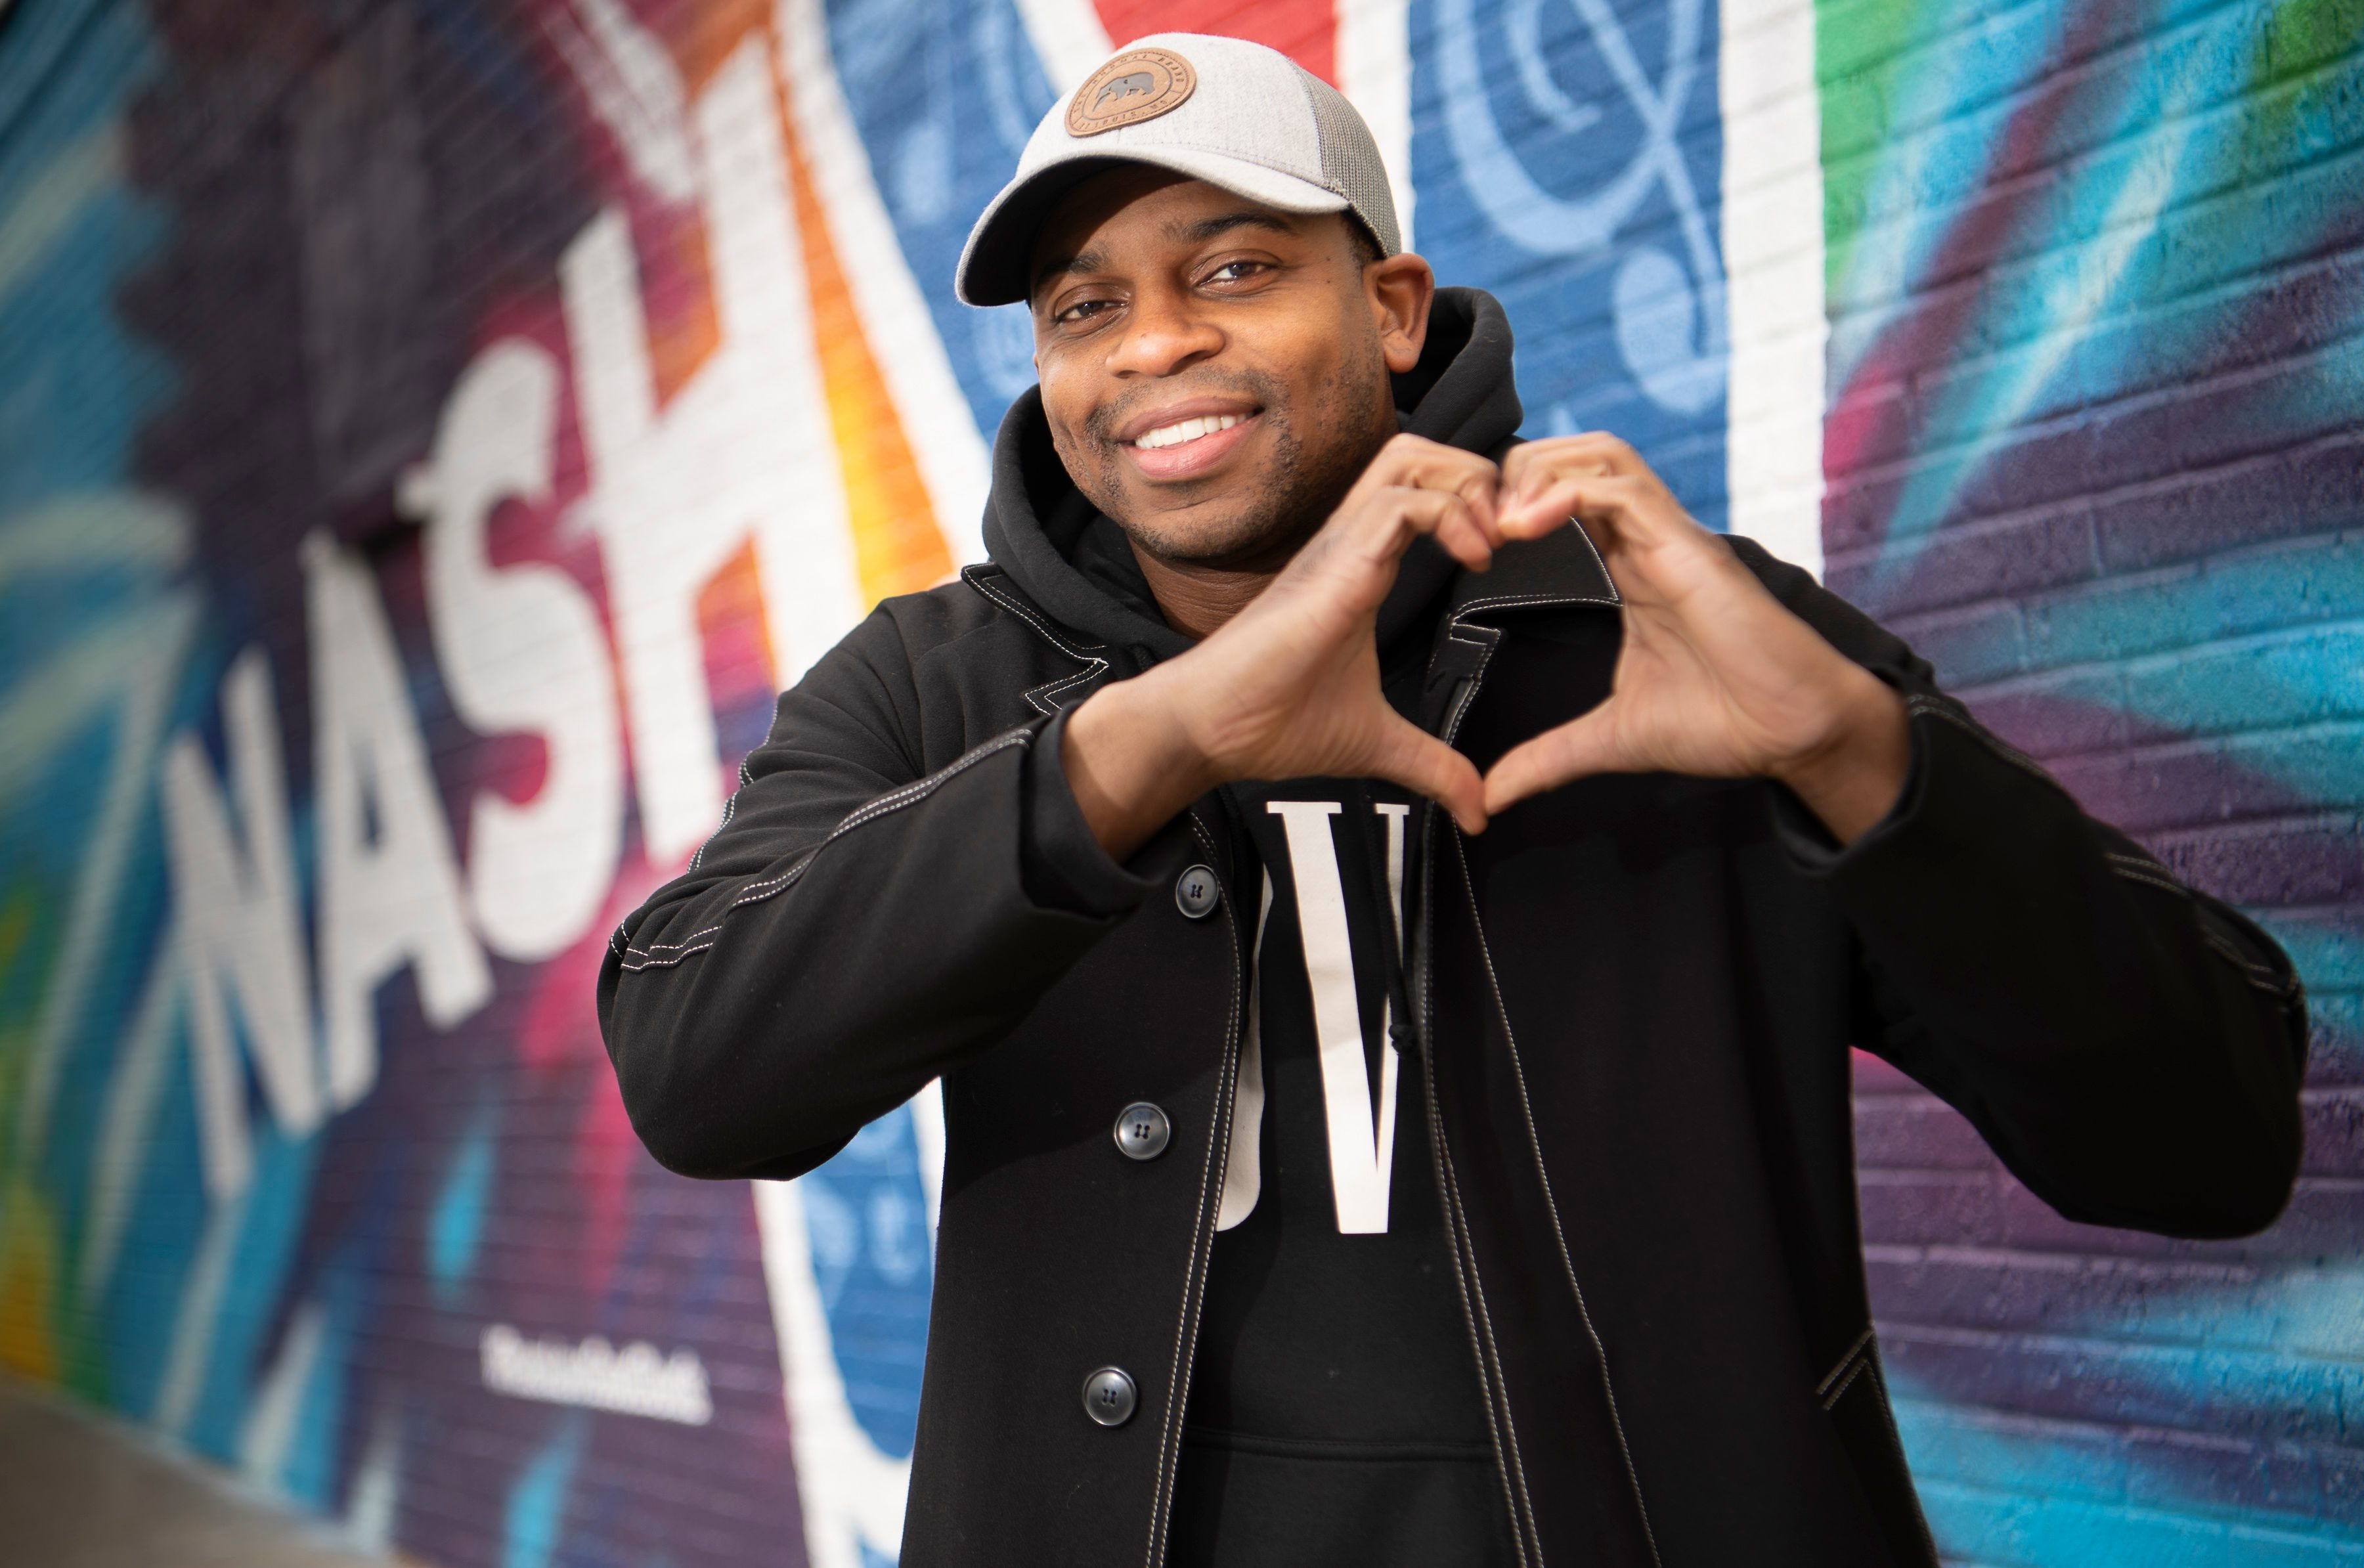 """With """"Best Shot,"""" Jimmie Allen became the first black male artist to launch his career with a No. 1 song at country radio in 2018."""